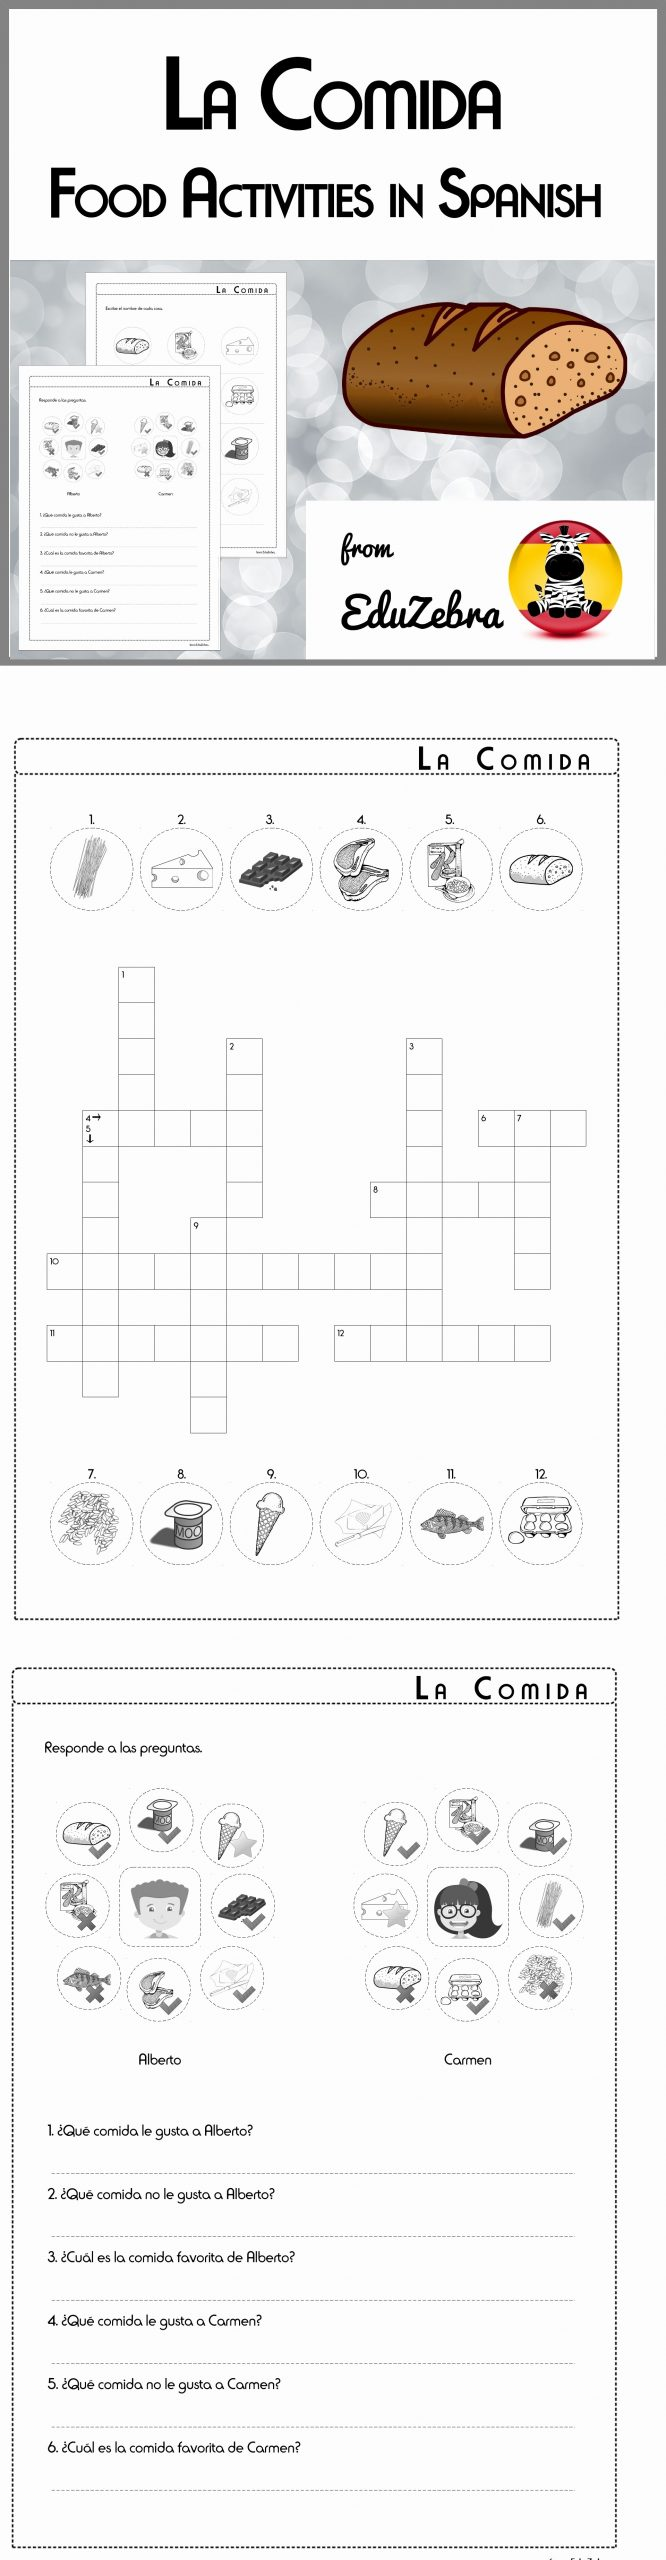 Cooking Worksheets for Middle School Lovely Food In Spanish La Ida Activity Pack with Images